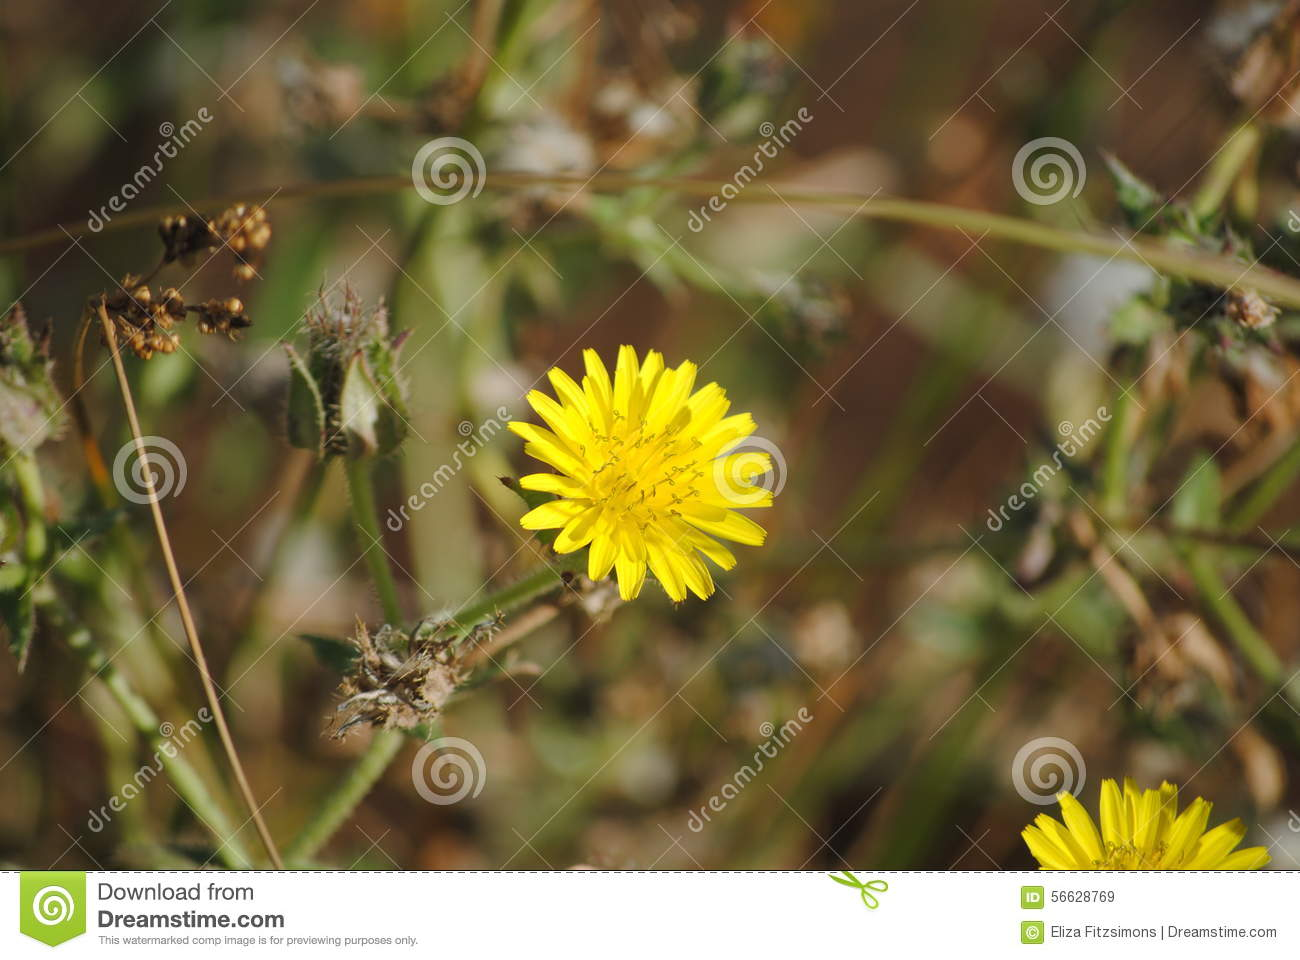 Hawkweed Yellow Weed Flower Stock Image Image Of Eucalyptus Bark